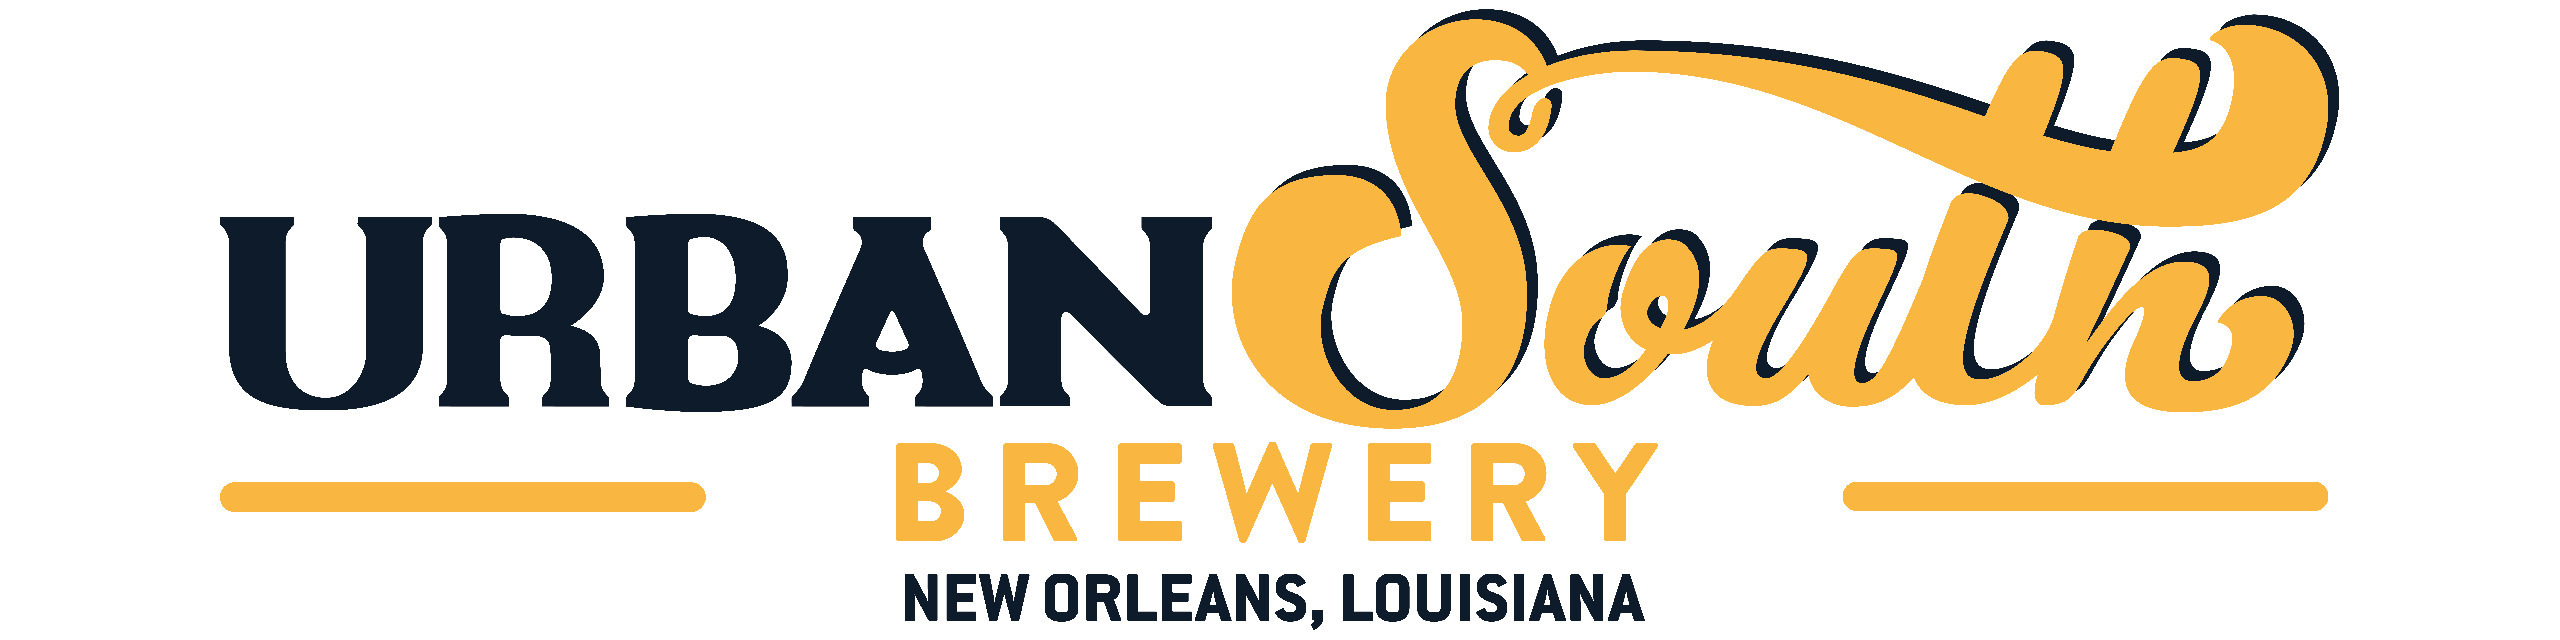 (@urbansouthbrewery) Cover Image